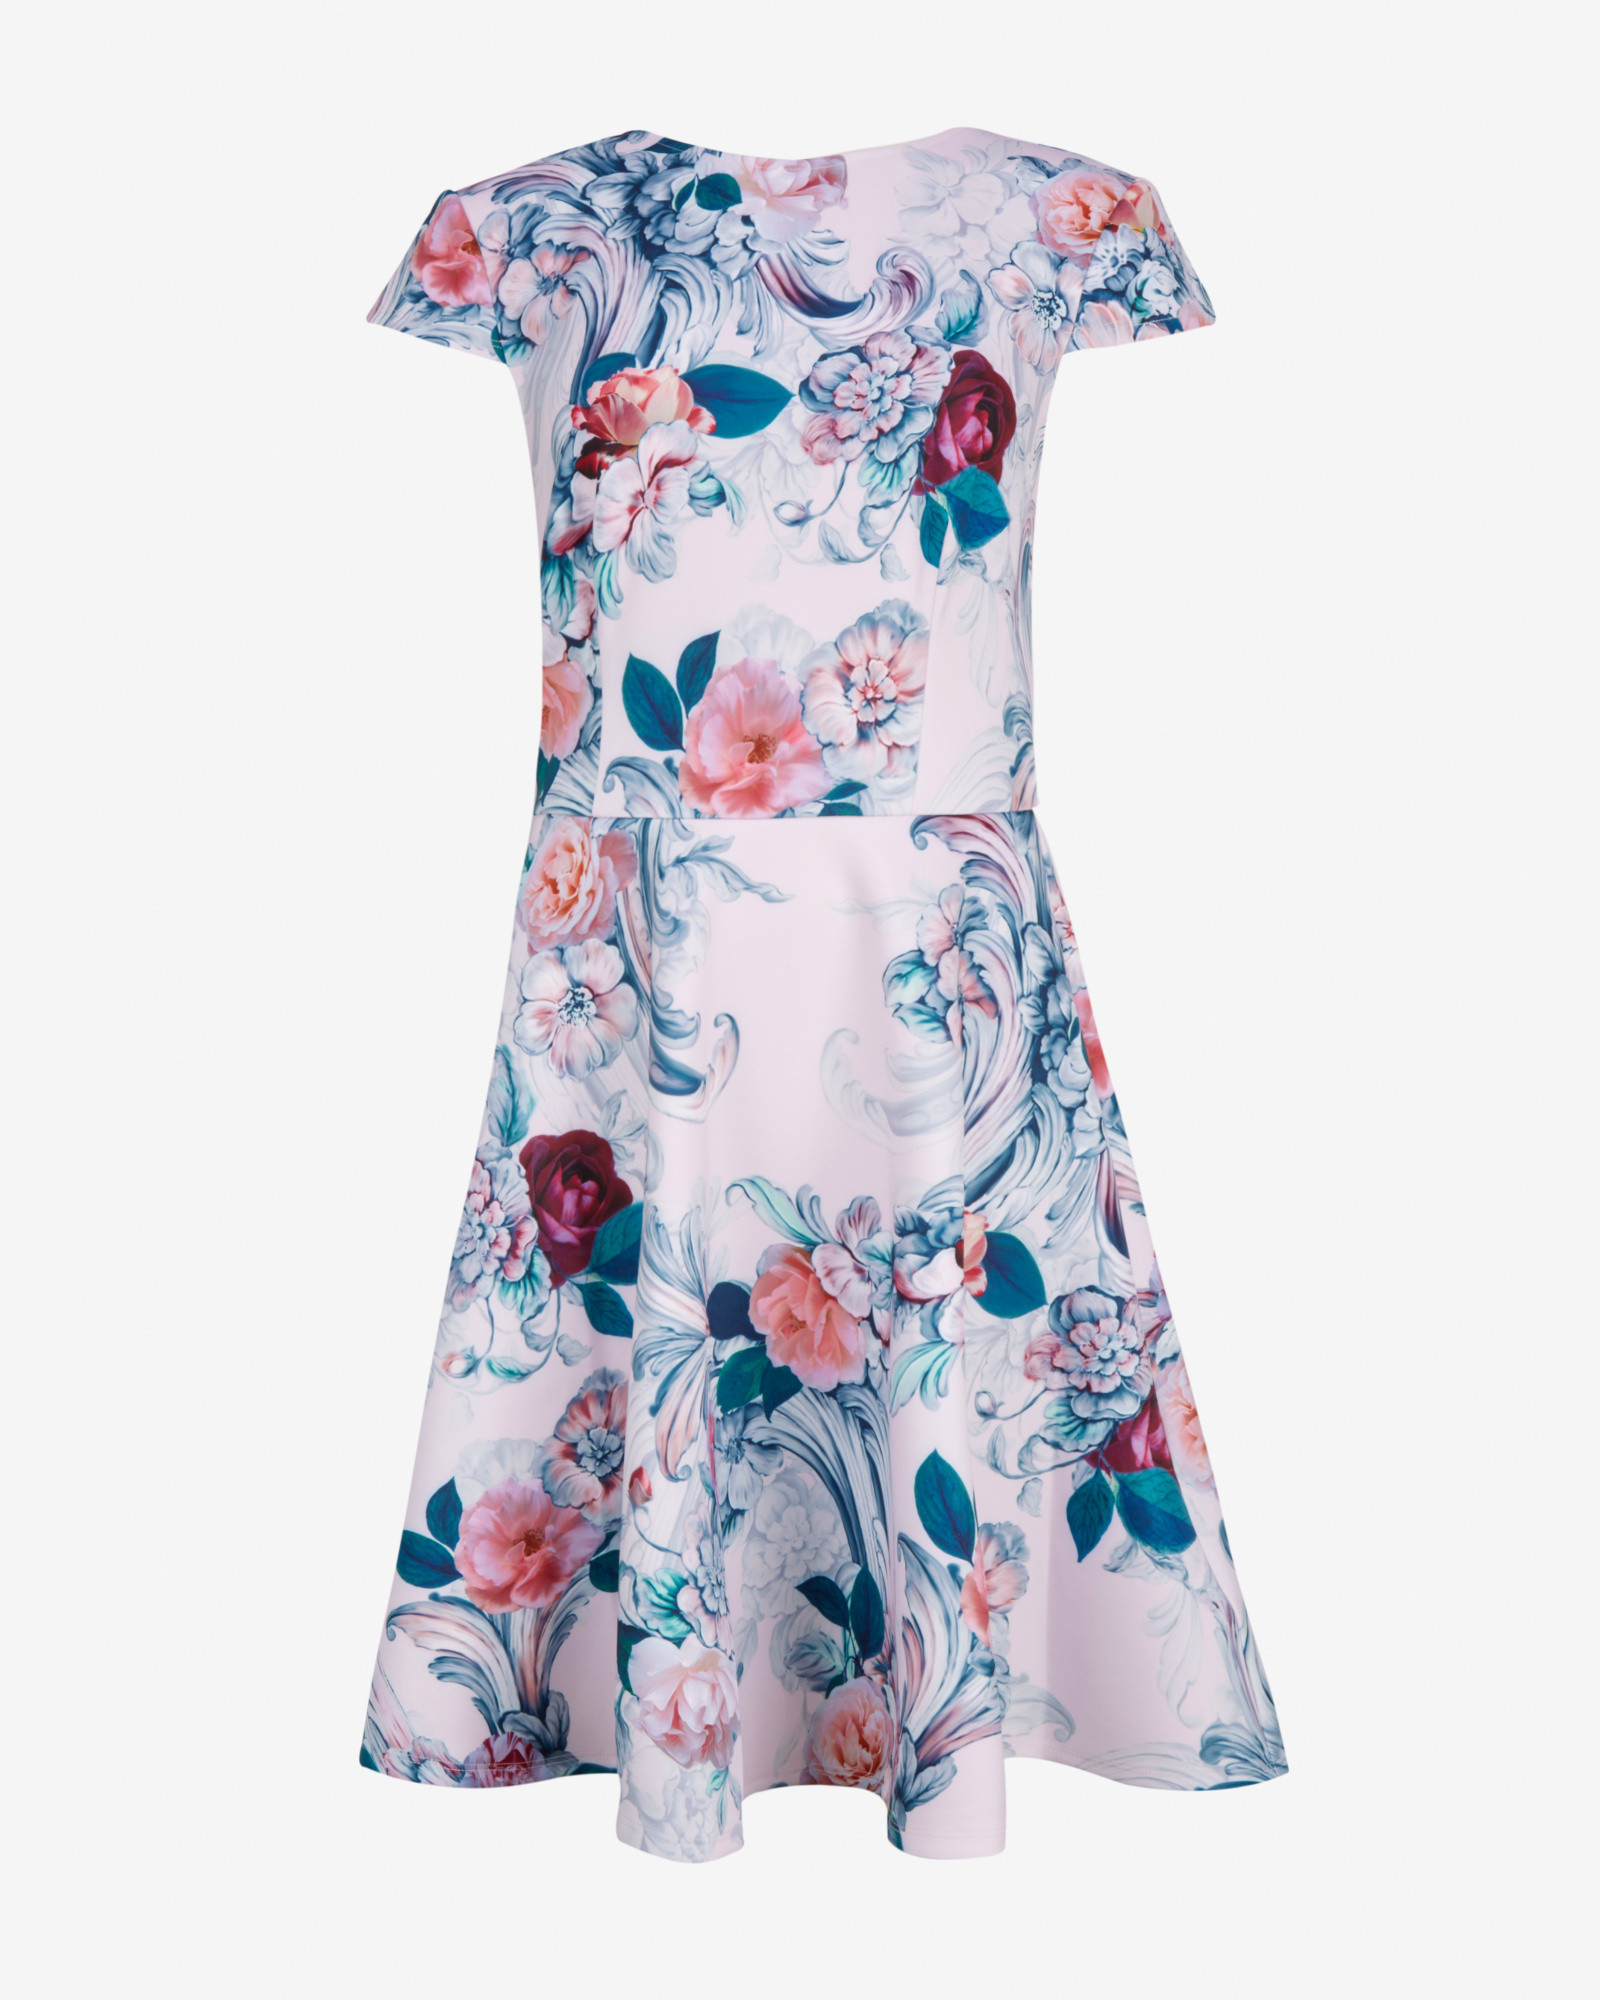 67c14d772ff0 Lyst - Ted Baker Acanthus Scroll Skater Dress in Pink